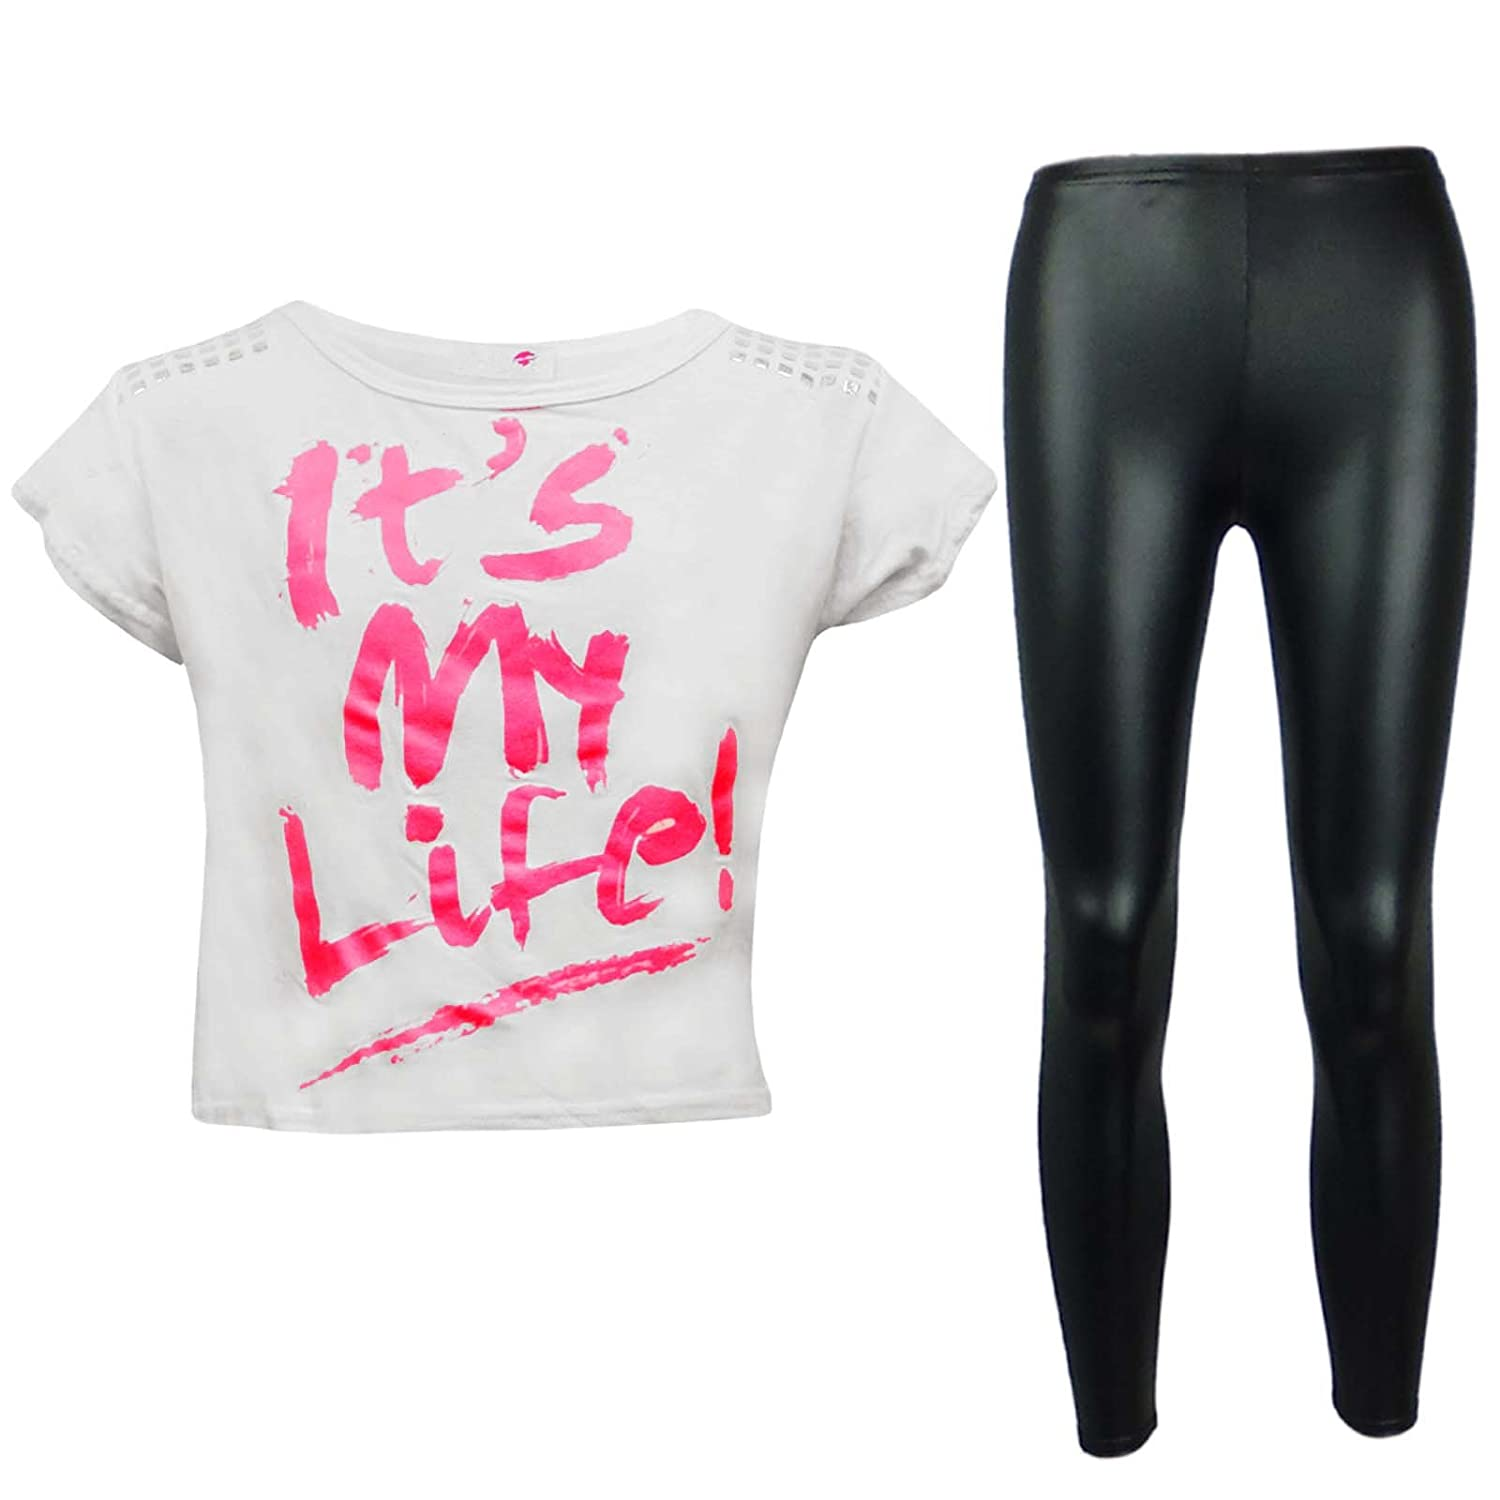 A2Z 4 Kids® New Kids Girls It's My Life ! Crop Top & Black Wet Look Legging Set New Age 7 8 9 10 11 12 13 Years